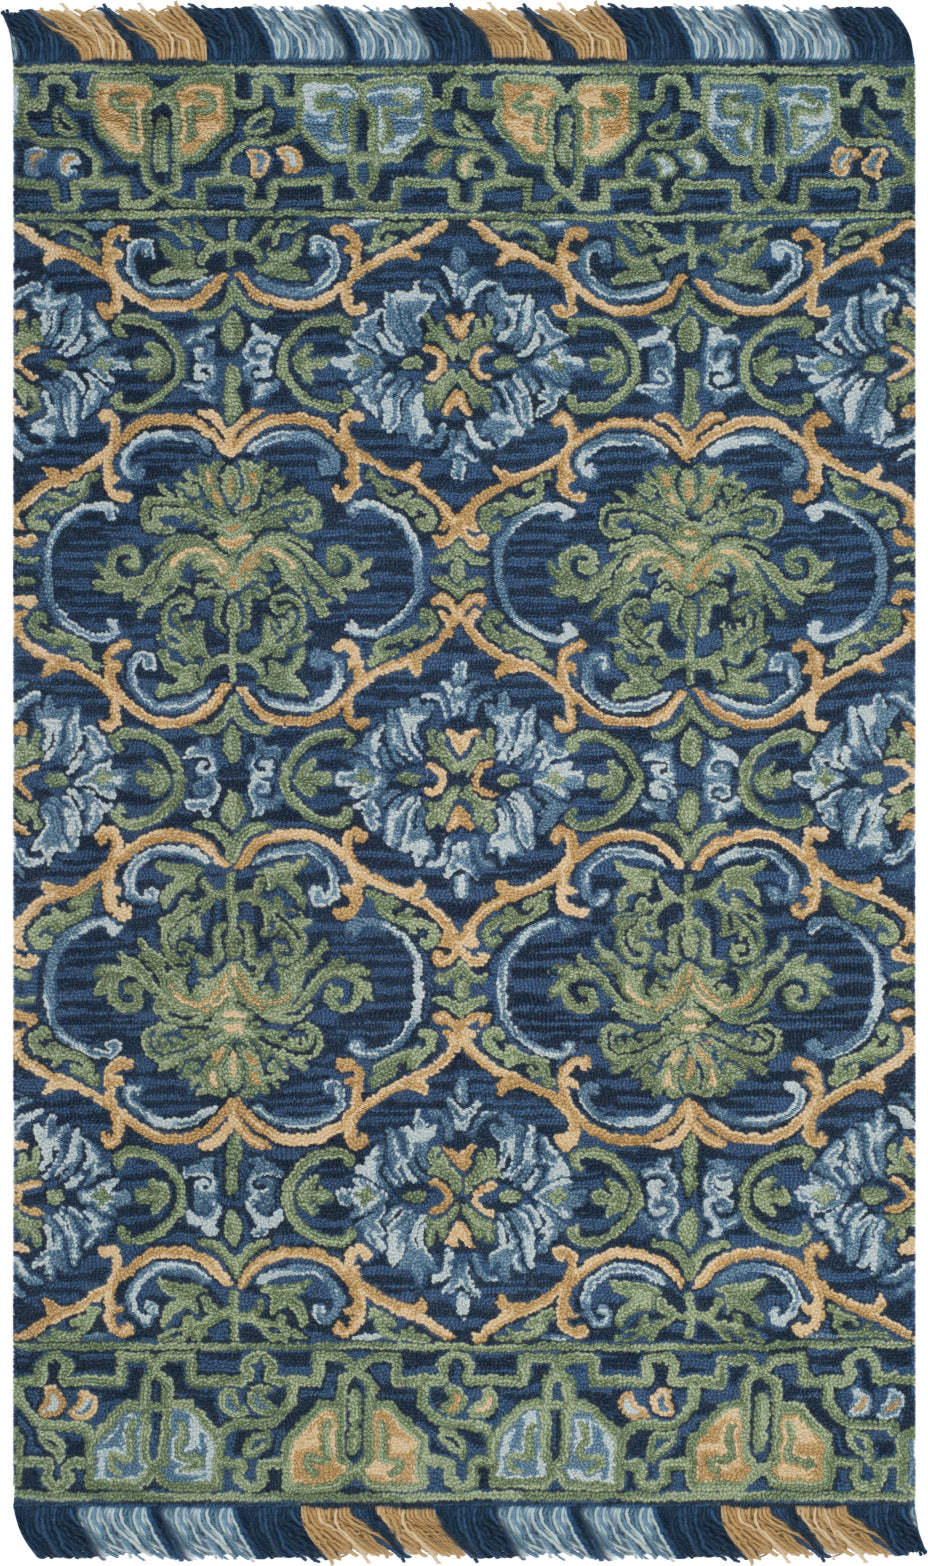 Safavieh Blossom 422 Navy/Green Area Rug main image